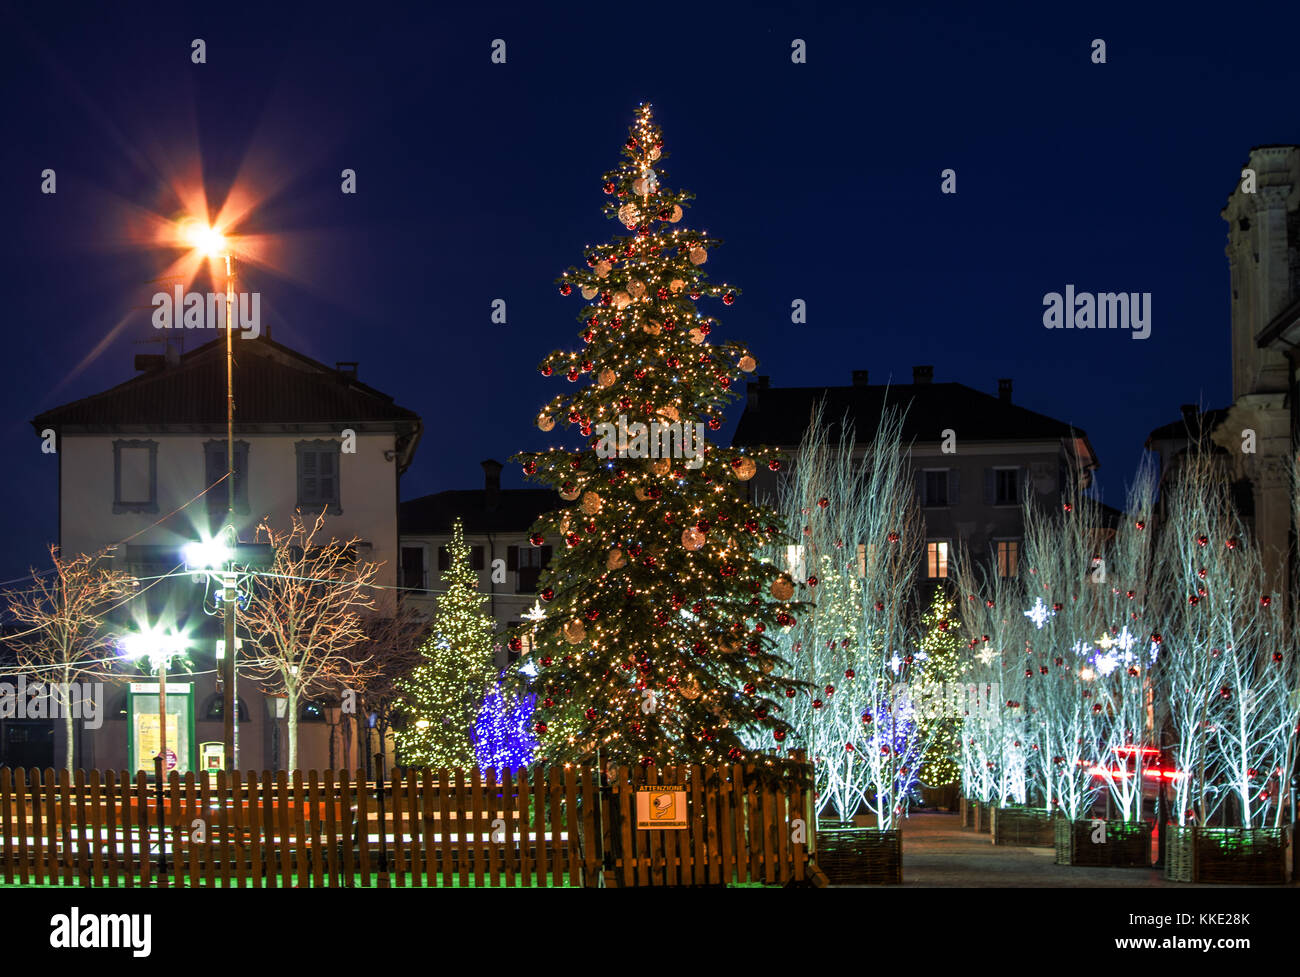 Festive Atmosphere In The City Center With Colored Lights Stock Photo Alamy